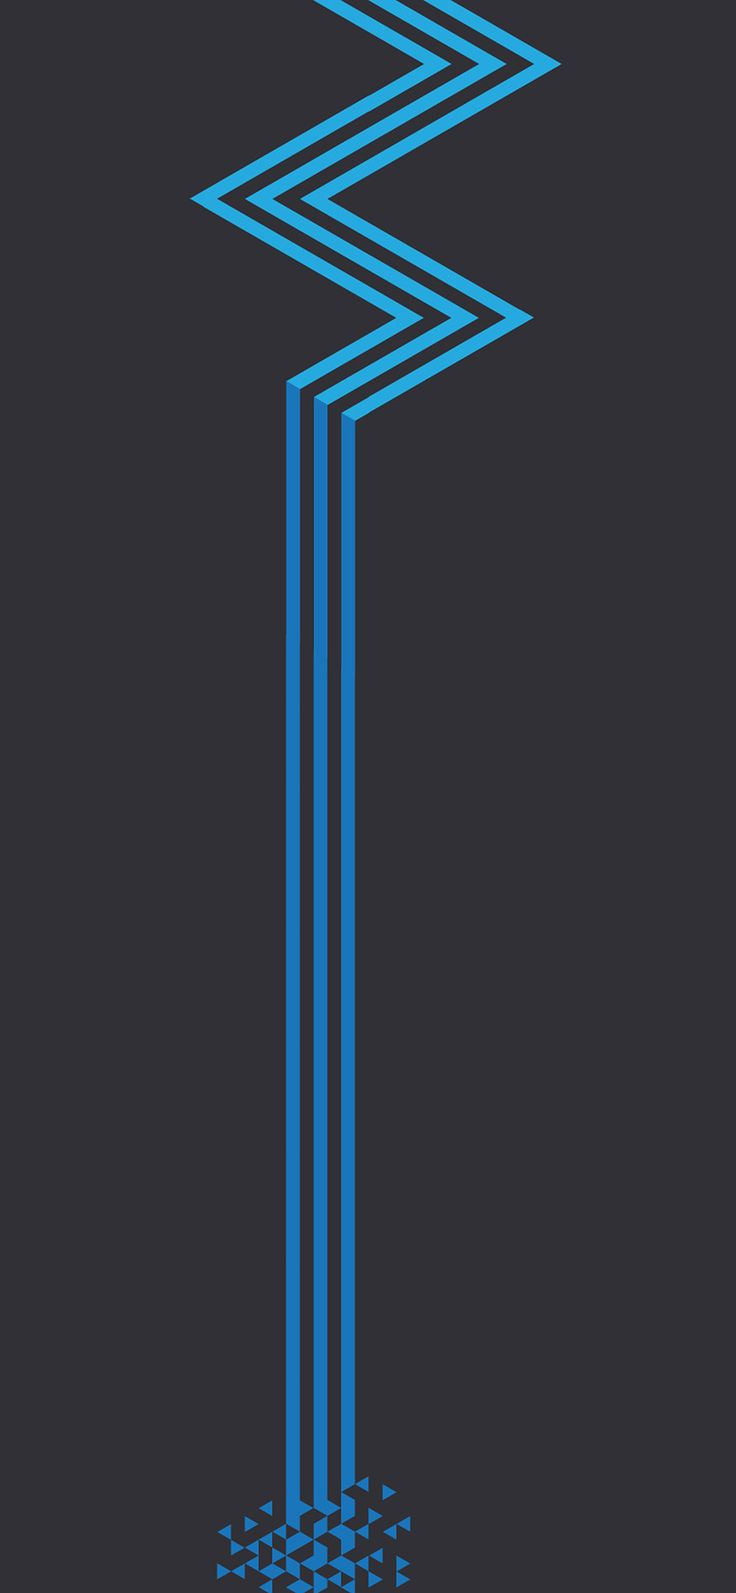 Iphone X Wallpaper Vz23 Minimal Blue Dark Line Abstract